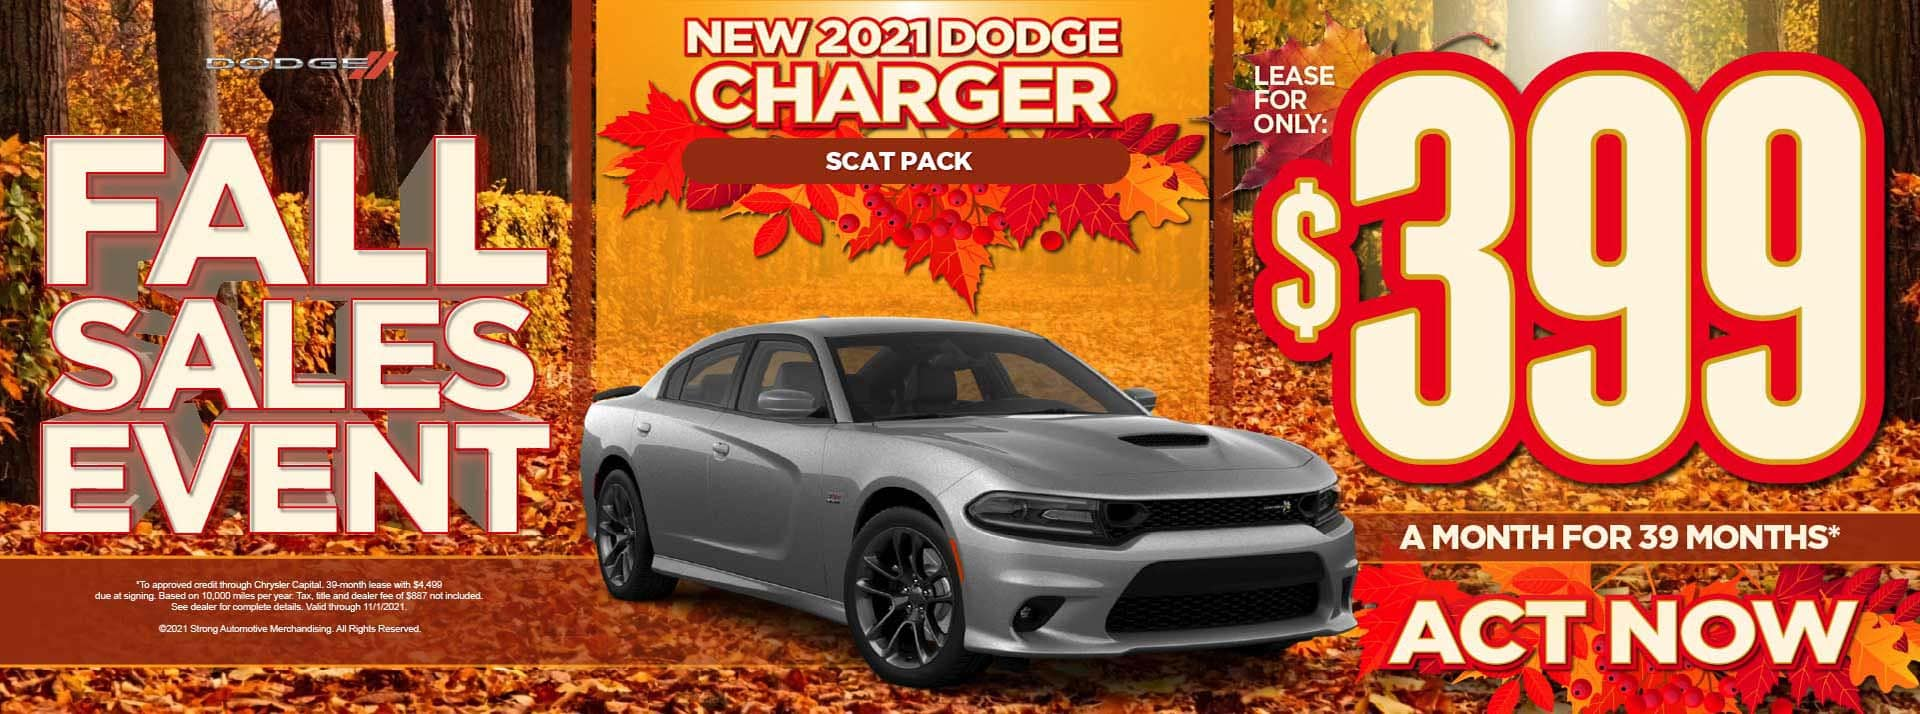 New 2021 Dodge Charger Scat Pack - $399 / mo - ACT NOW